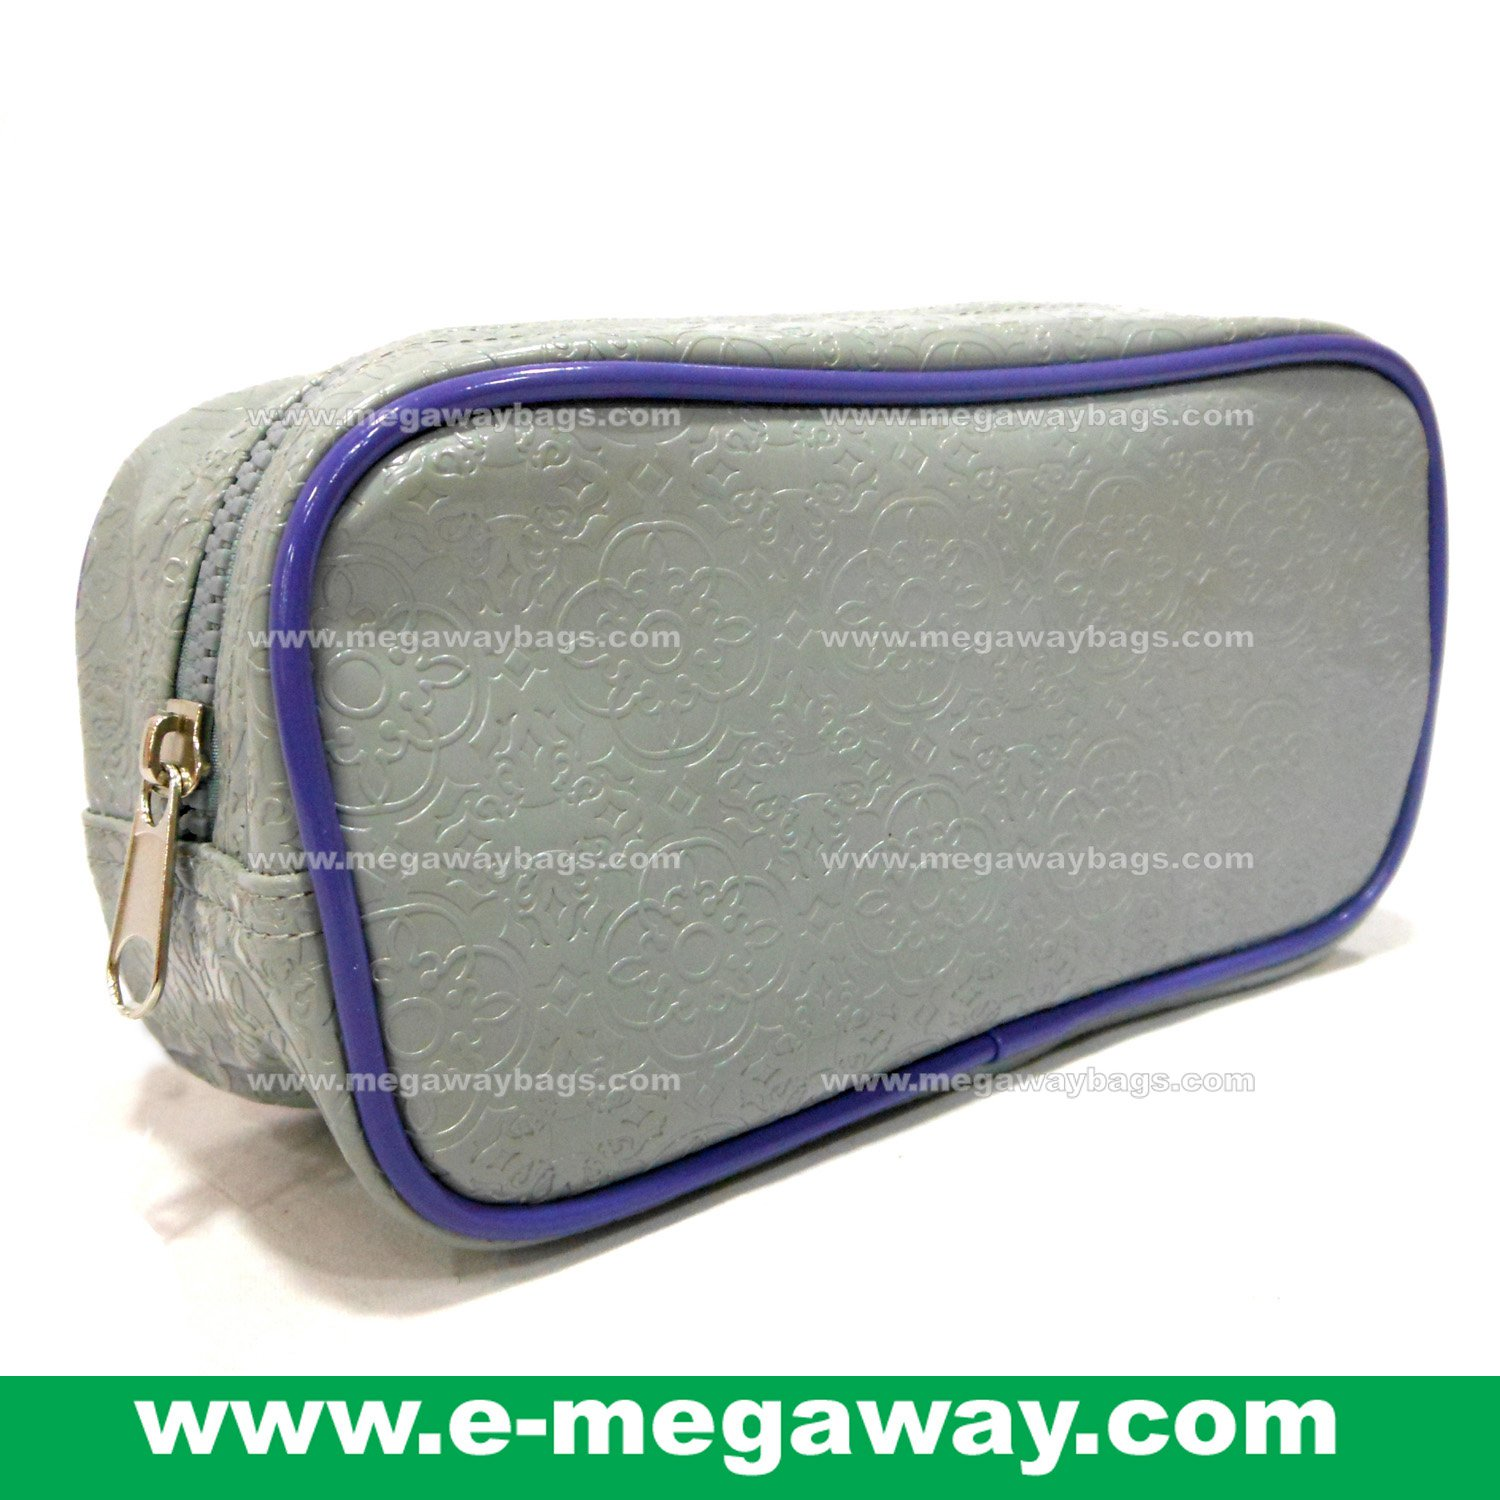 Designers Unique Emboss PVC Beauty Cosmetic Make Up Bags Pouch Purse MegawayBags #CC-0041C